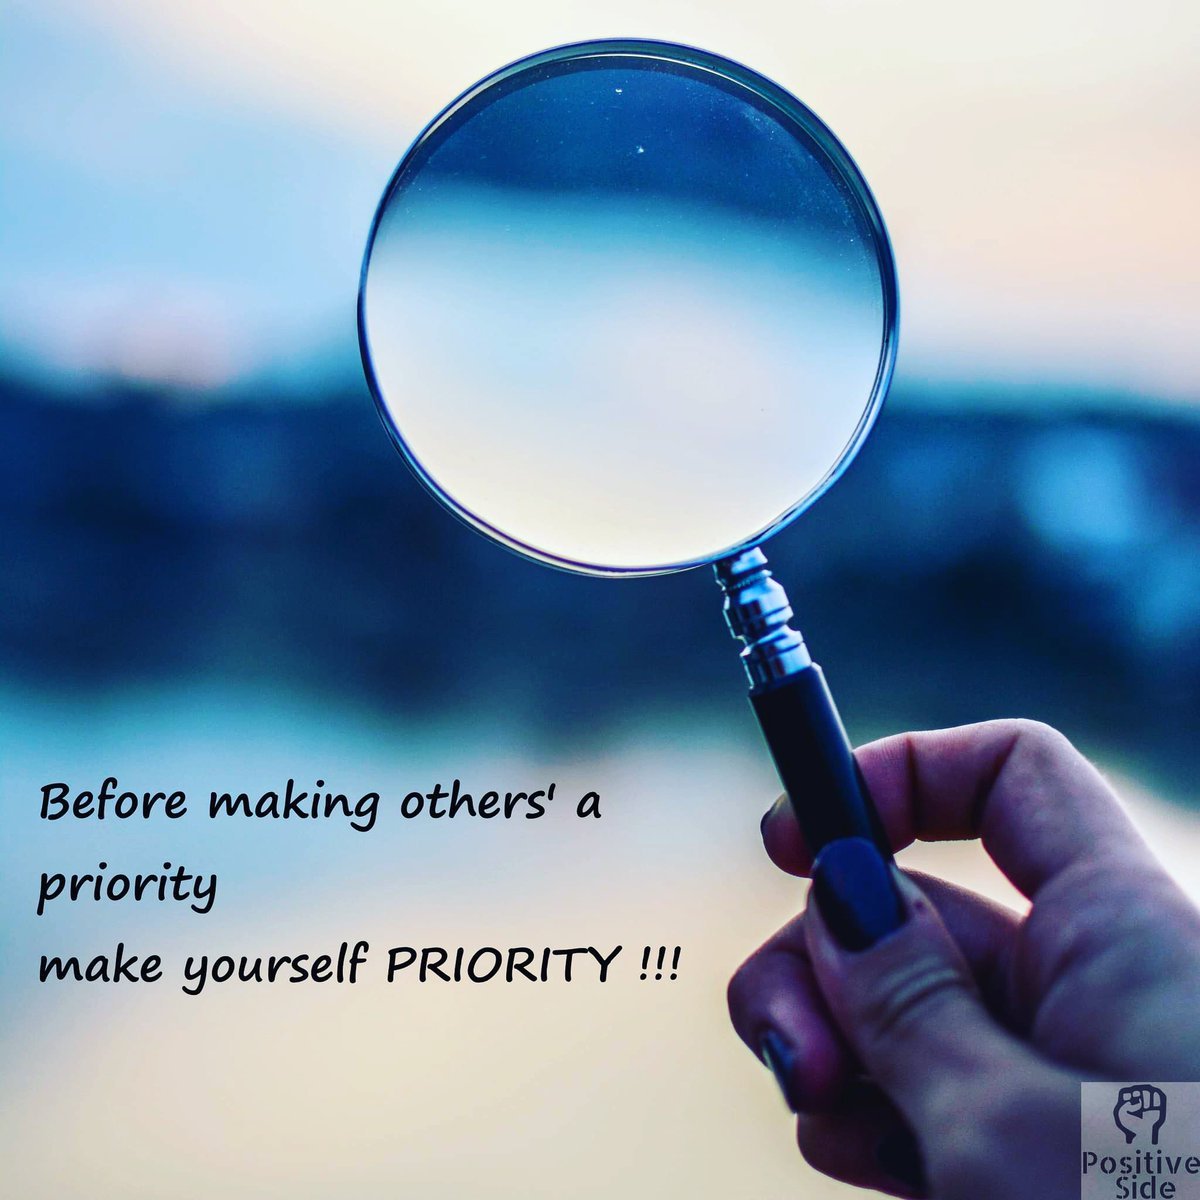 Before making others' a priority Make yourself a PRIORITY. . . . . #Srilanka #USA #business #smile #fitness #lifequotes #beautiful #photography #writer #followforfollowback #motivate #sad #likeforlikes #words #likes